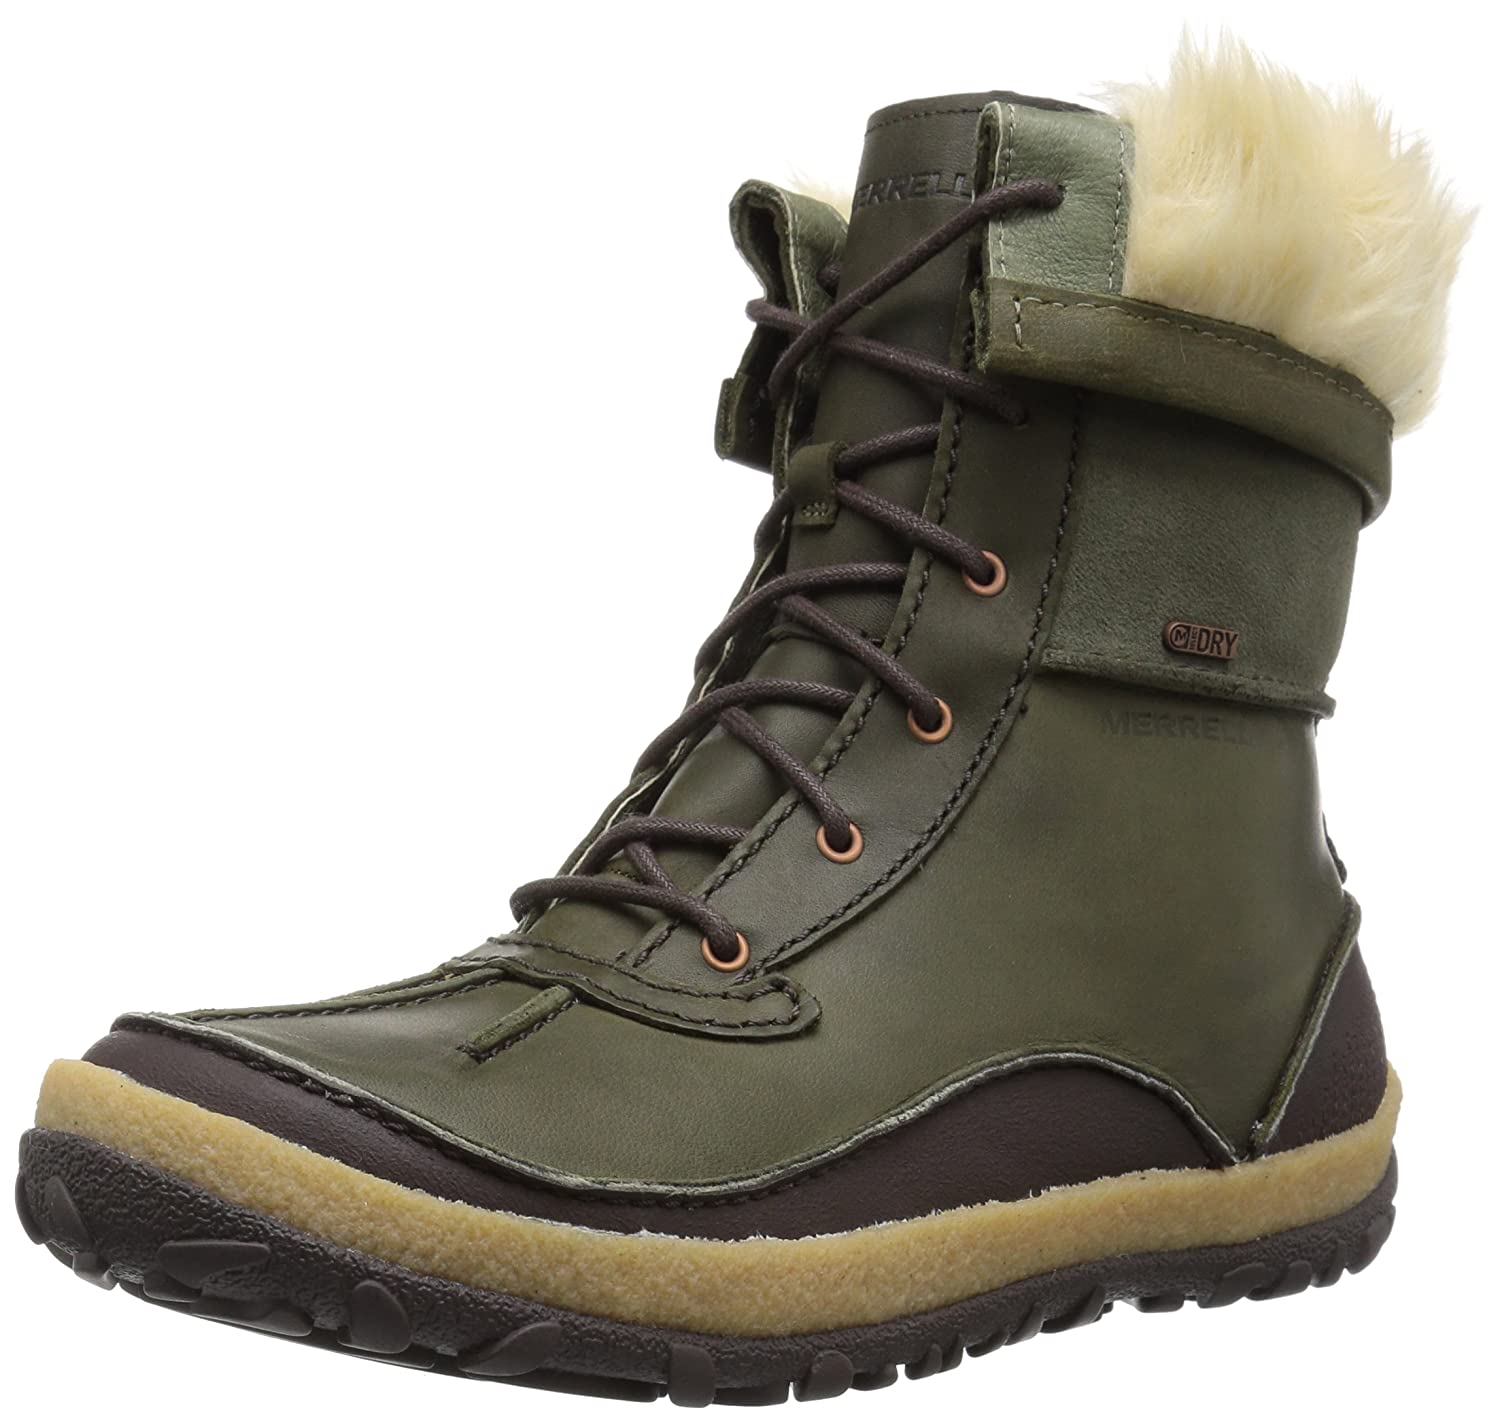 Merrell Women's Tremblant Mid Polar Waterproof Snow Boot B01N9I372X 10.5 B(M) US|Dusty Olive